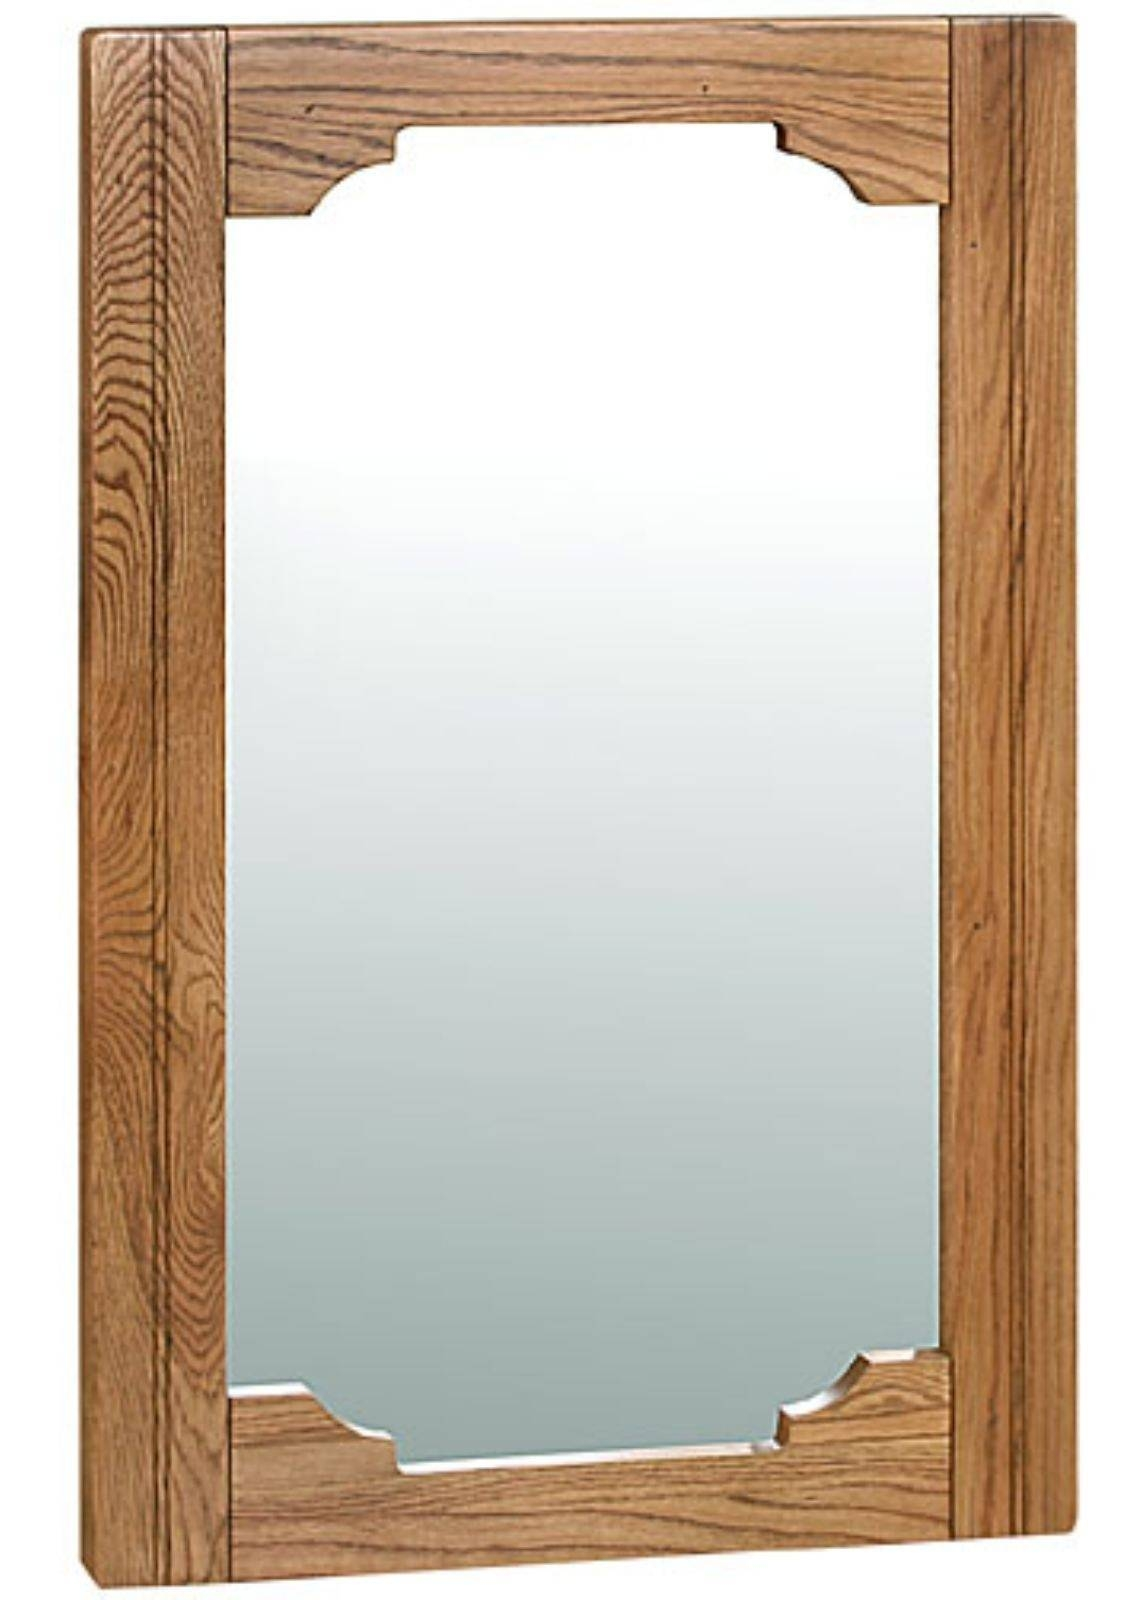 Wall Mirror For Your Home. Affordable Wall Mirrors (View 15 of 15)